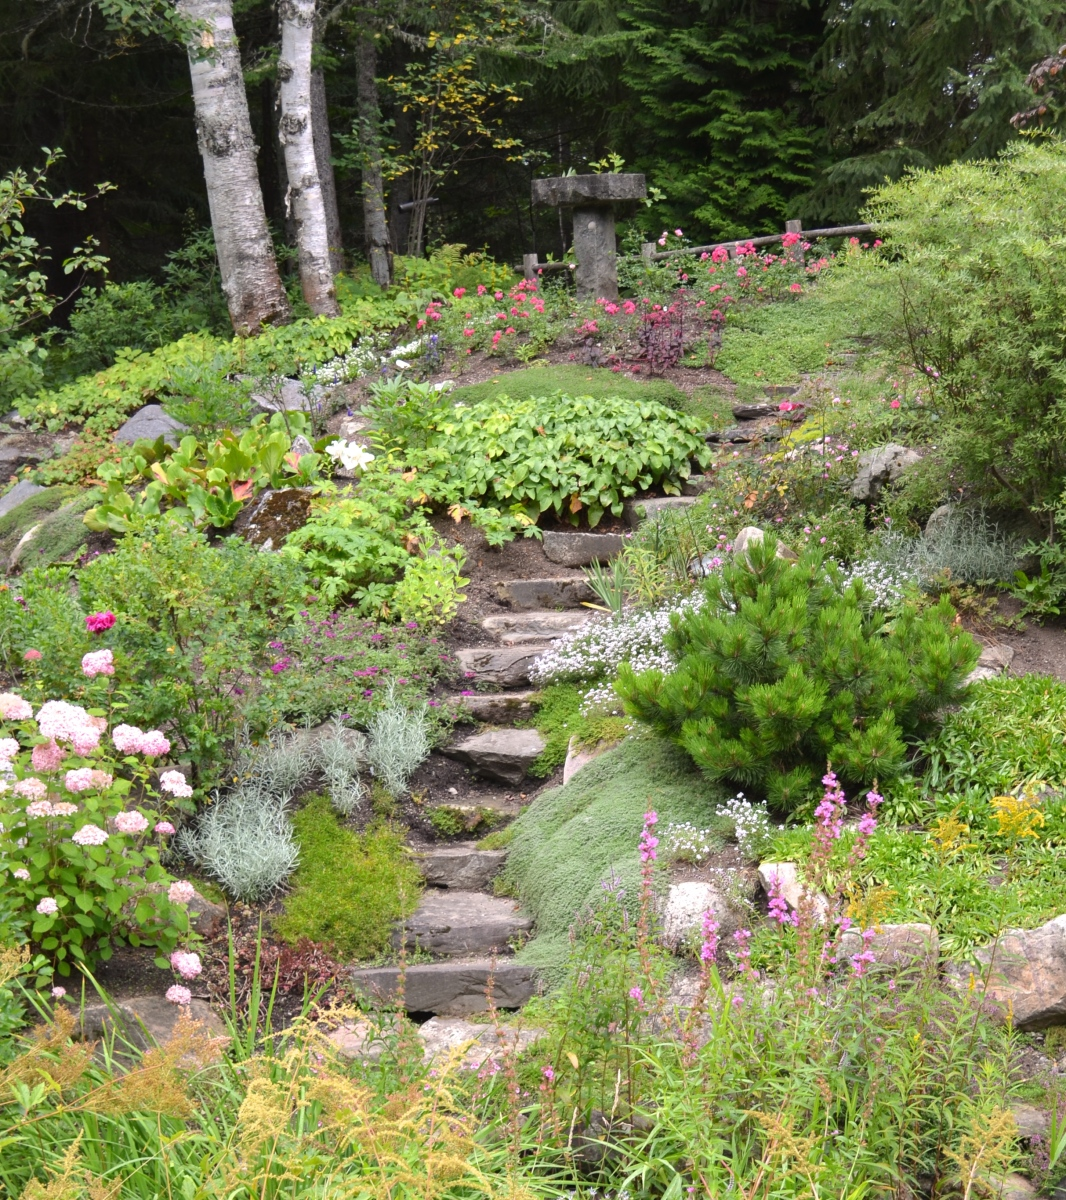 An example of garden design showing a stone stairway in Reford Gardens.